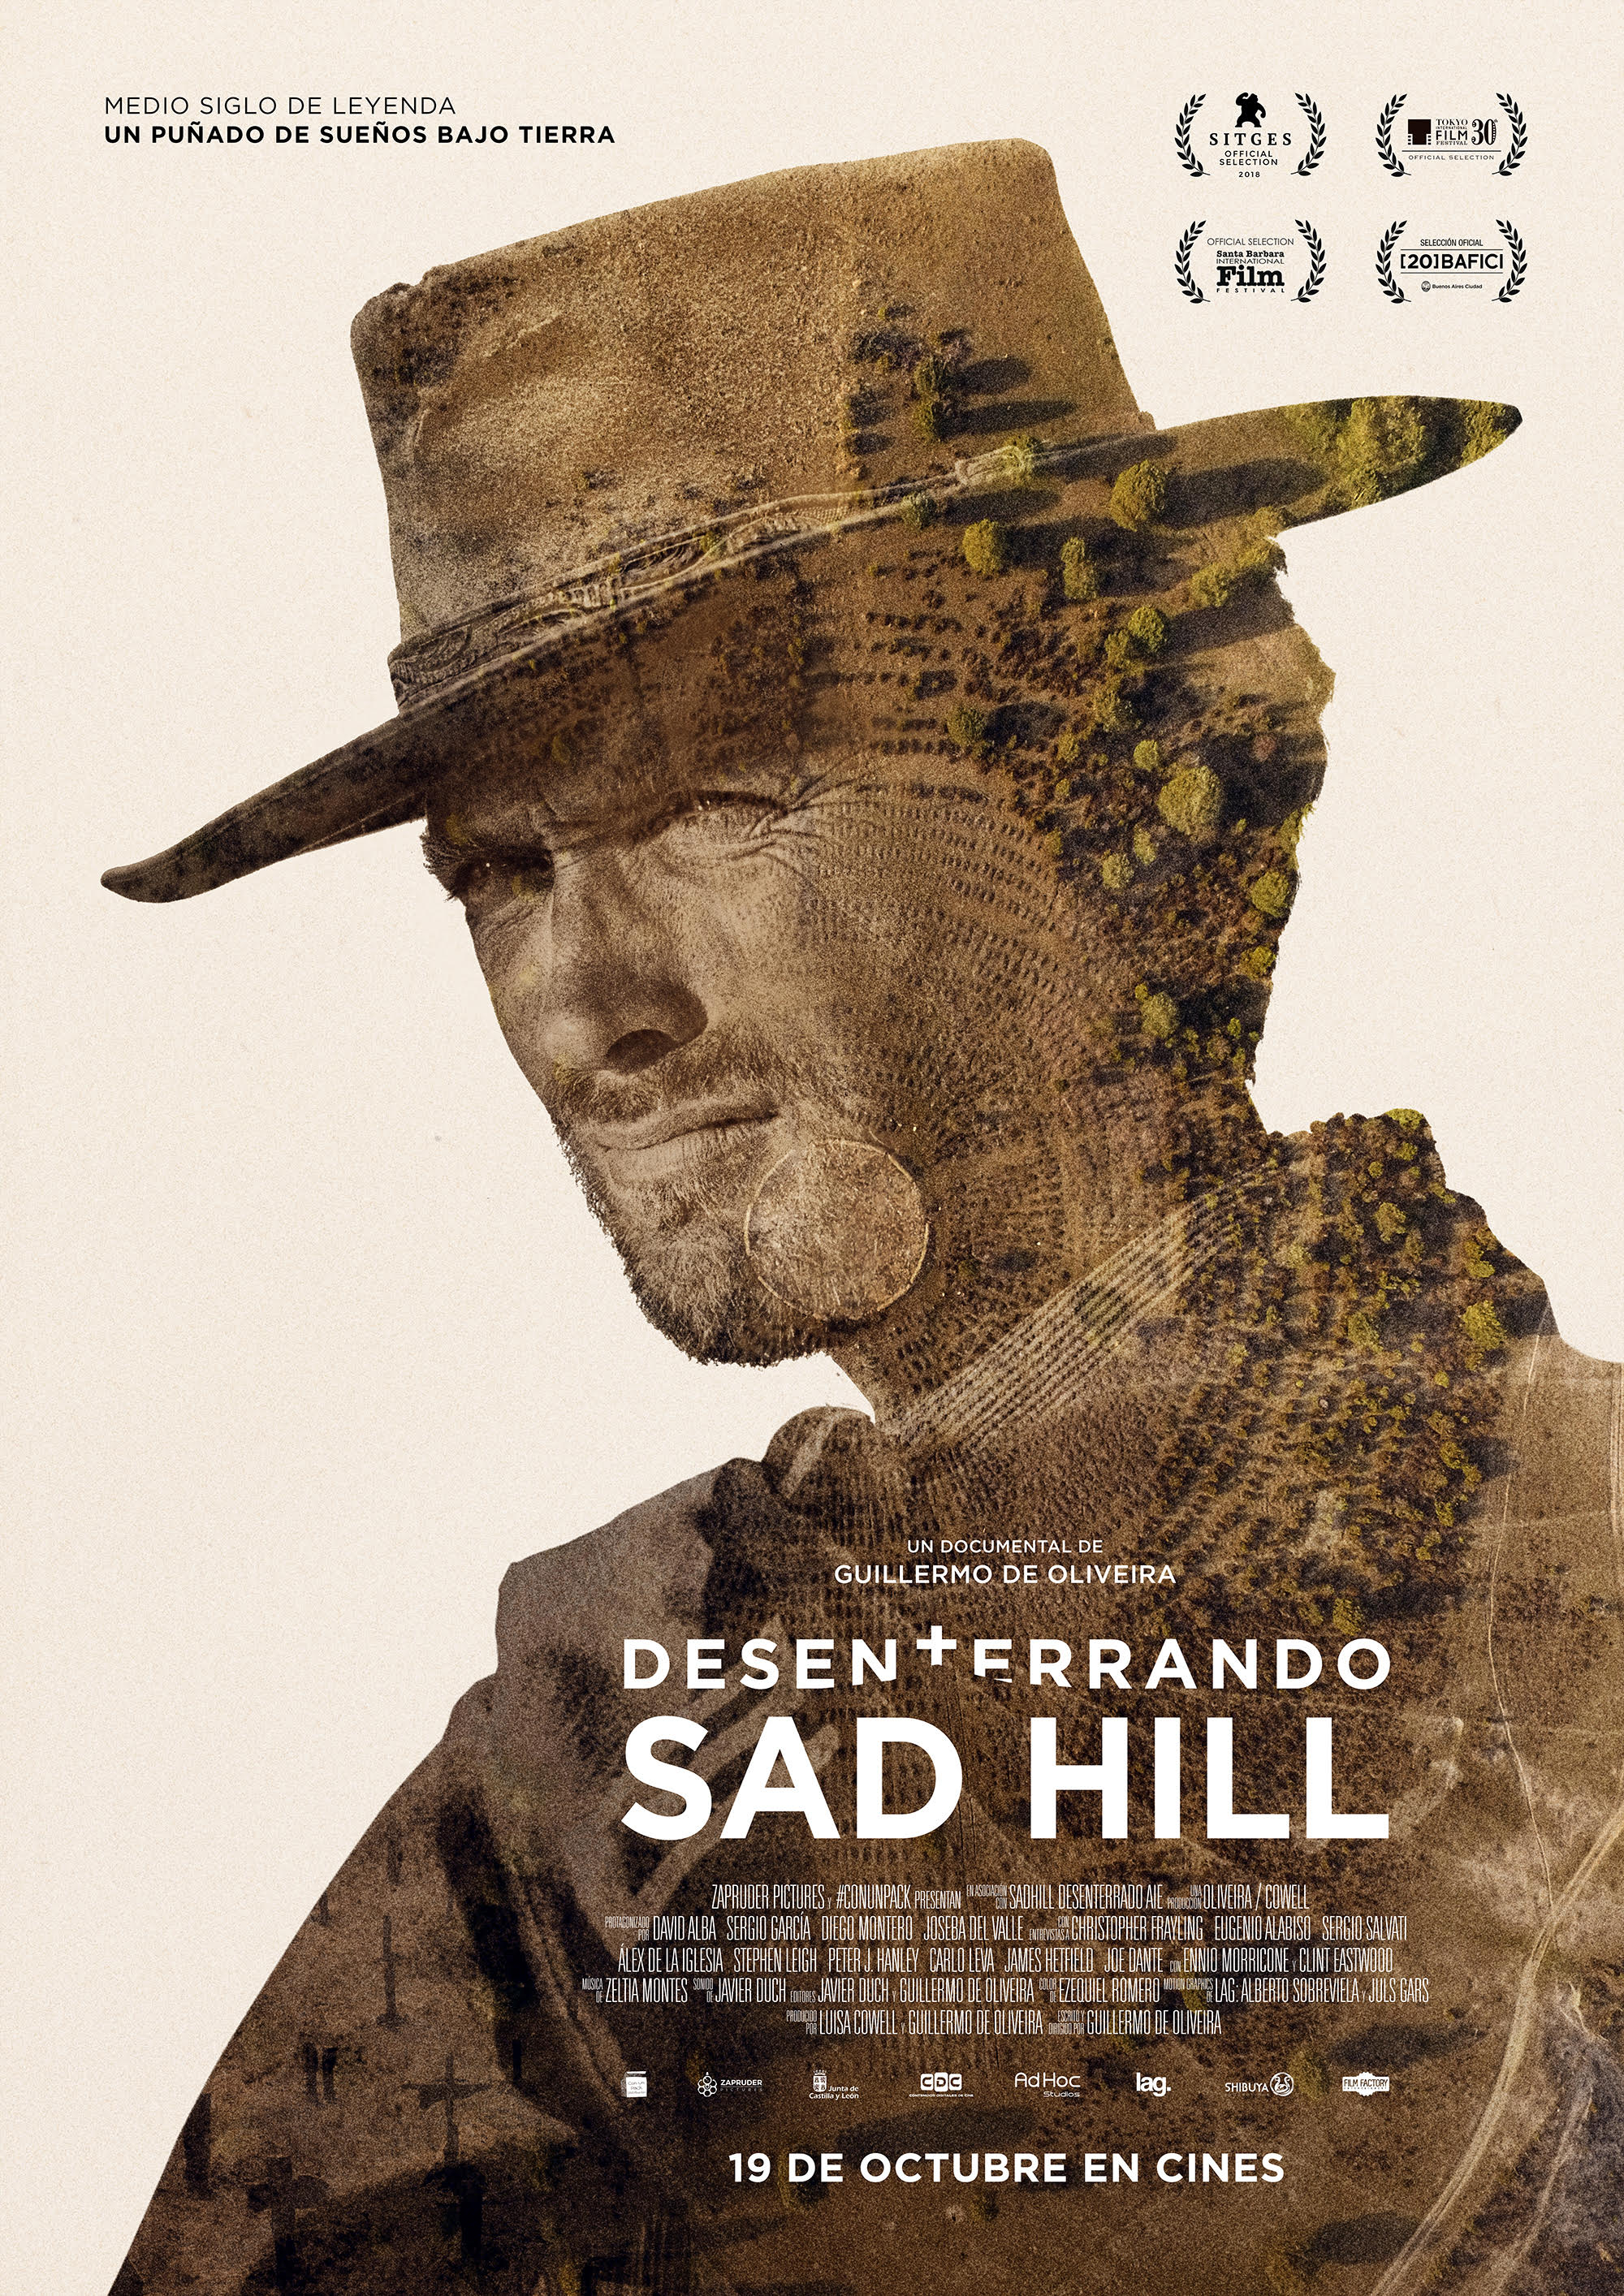 Cartel del documental Desenterrando Sad Hill